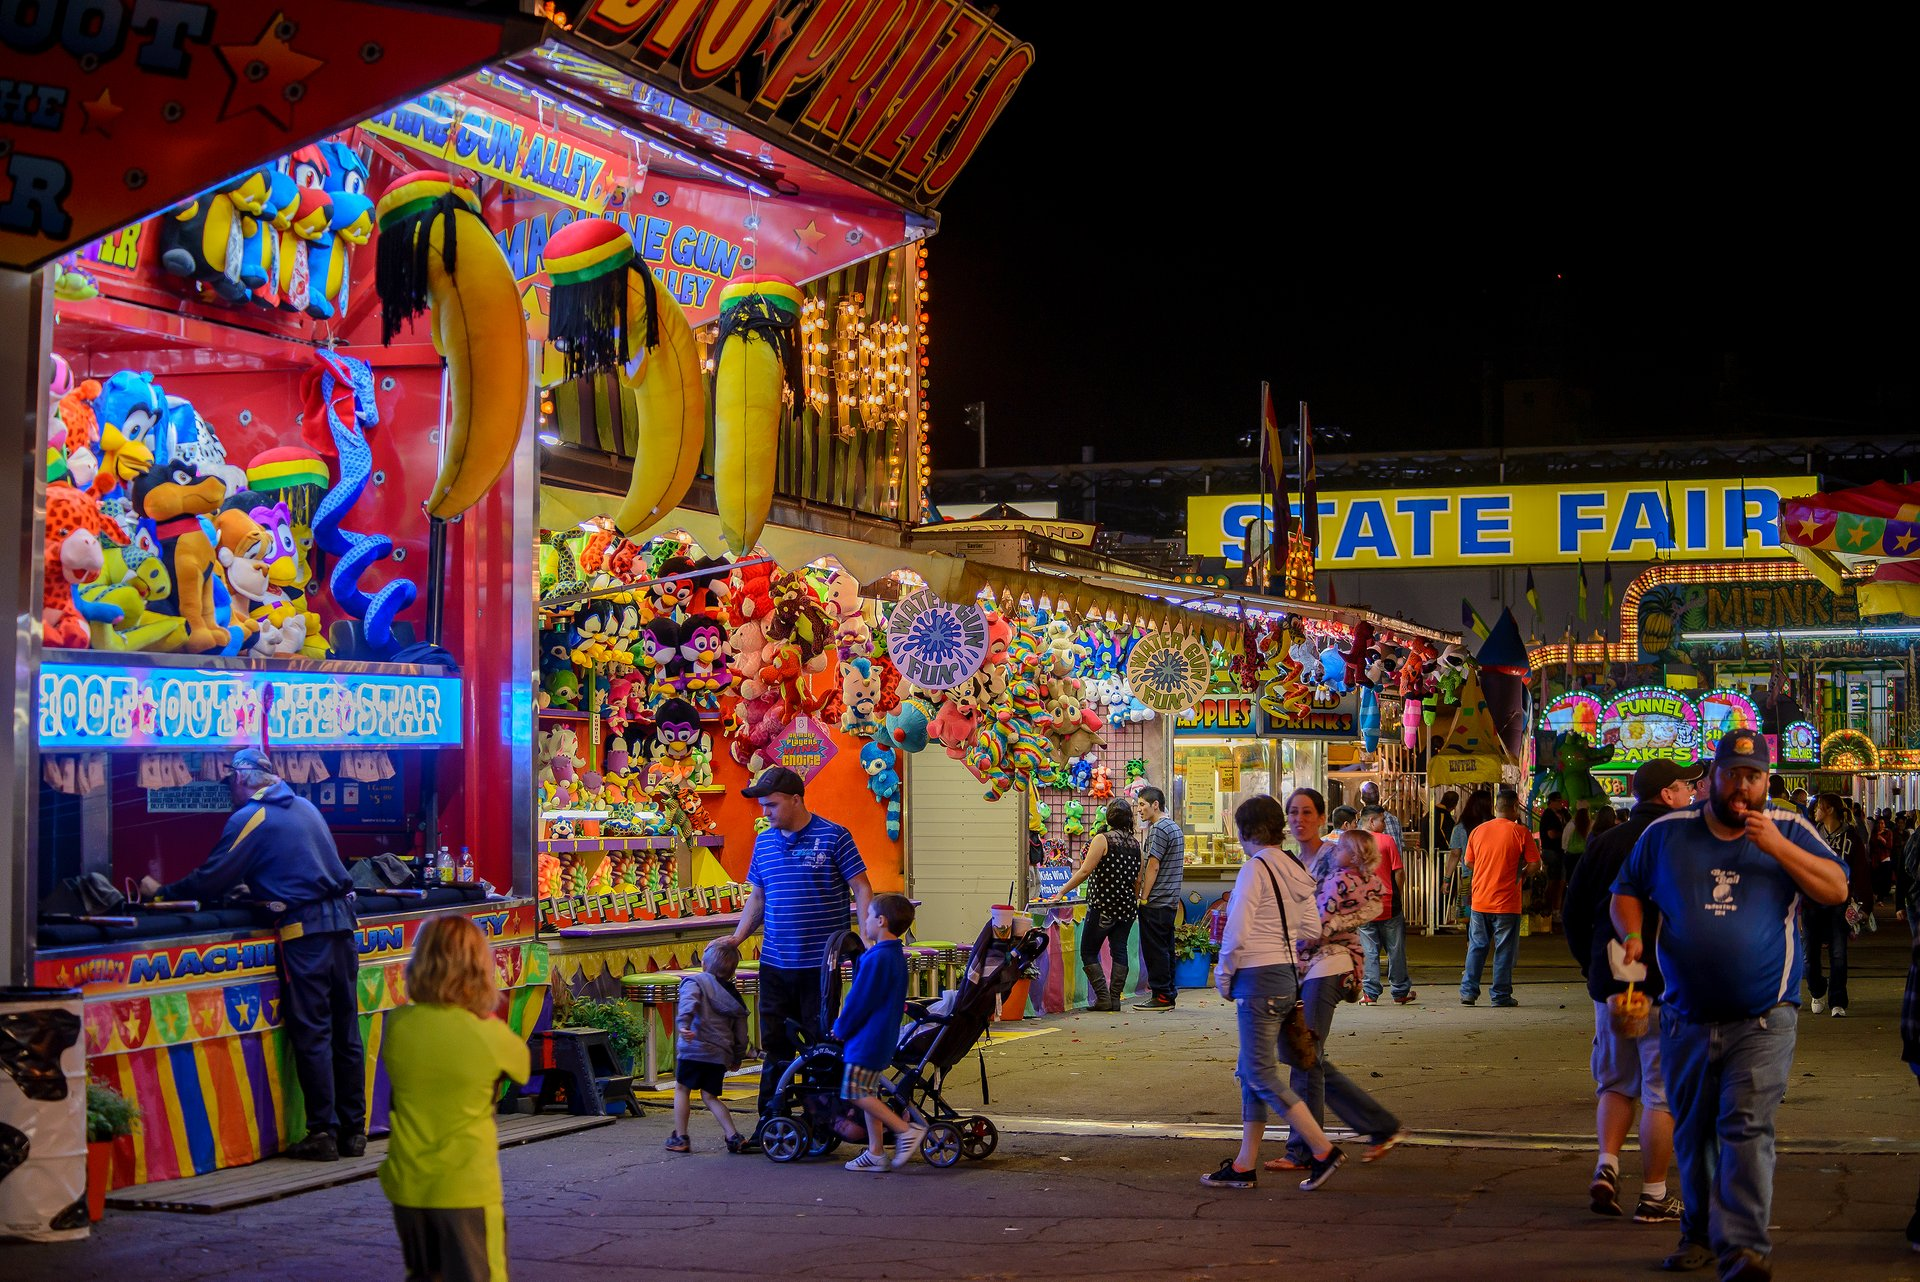 South Dakota State Fair in Midwest 2020 - Best Time